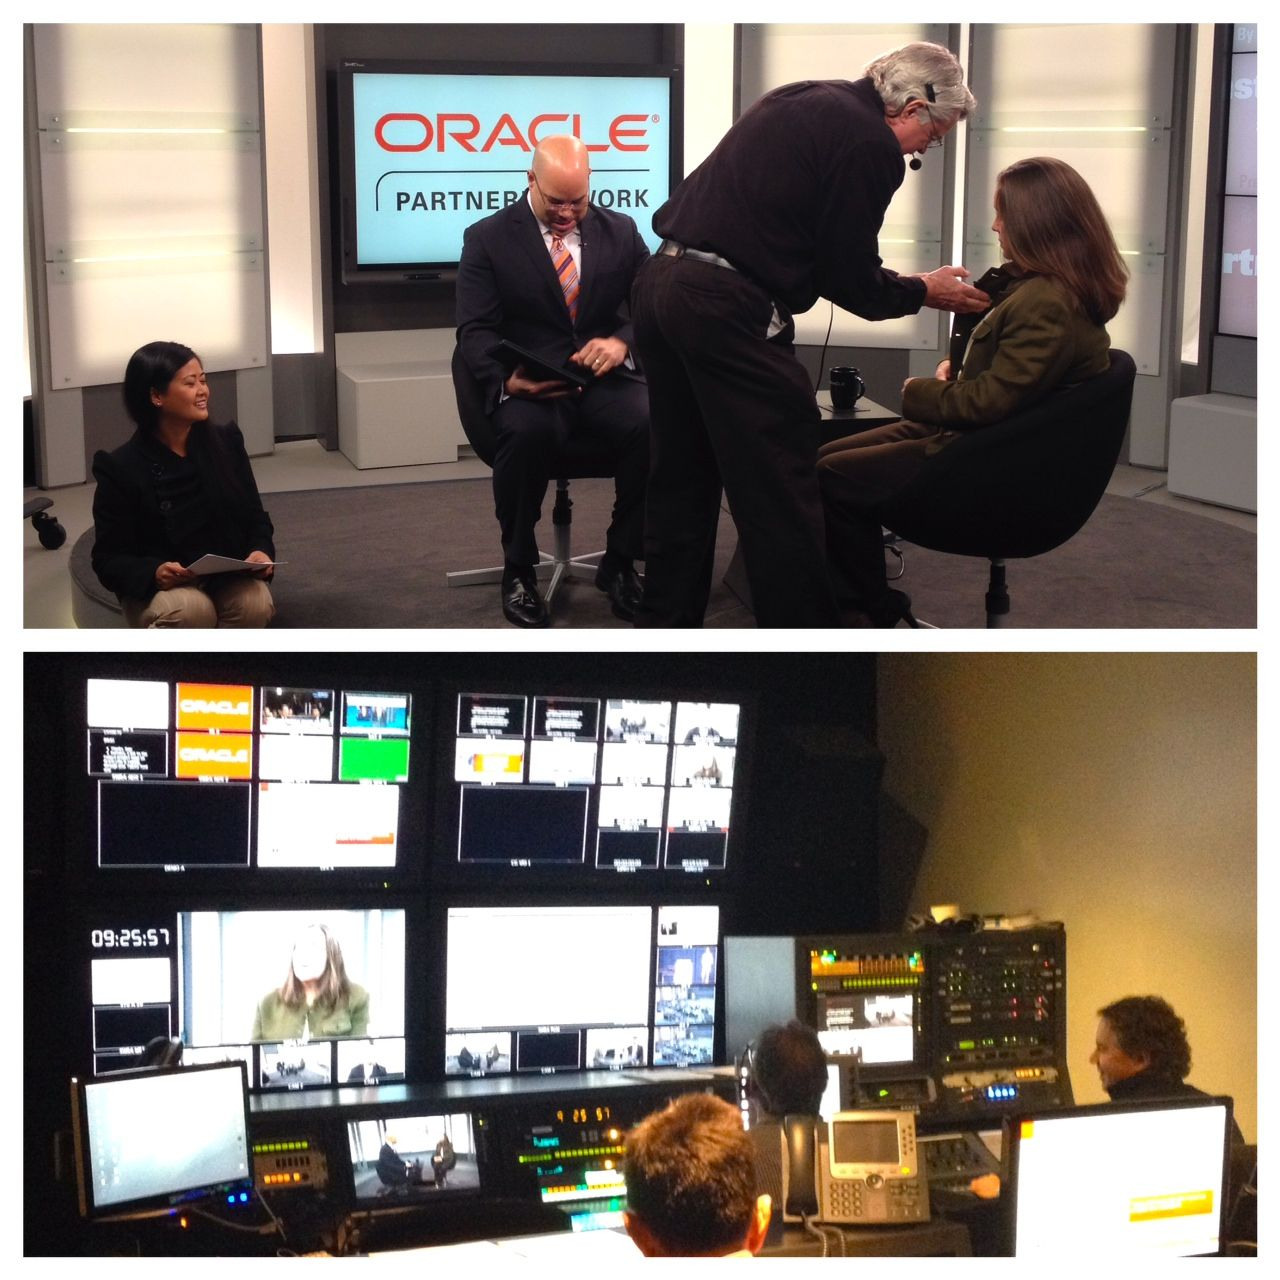 Check out #OPN in full PartnerCast prep mode for our February 12 installment. 30 min until we're #LIVE!